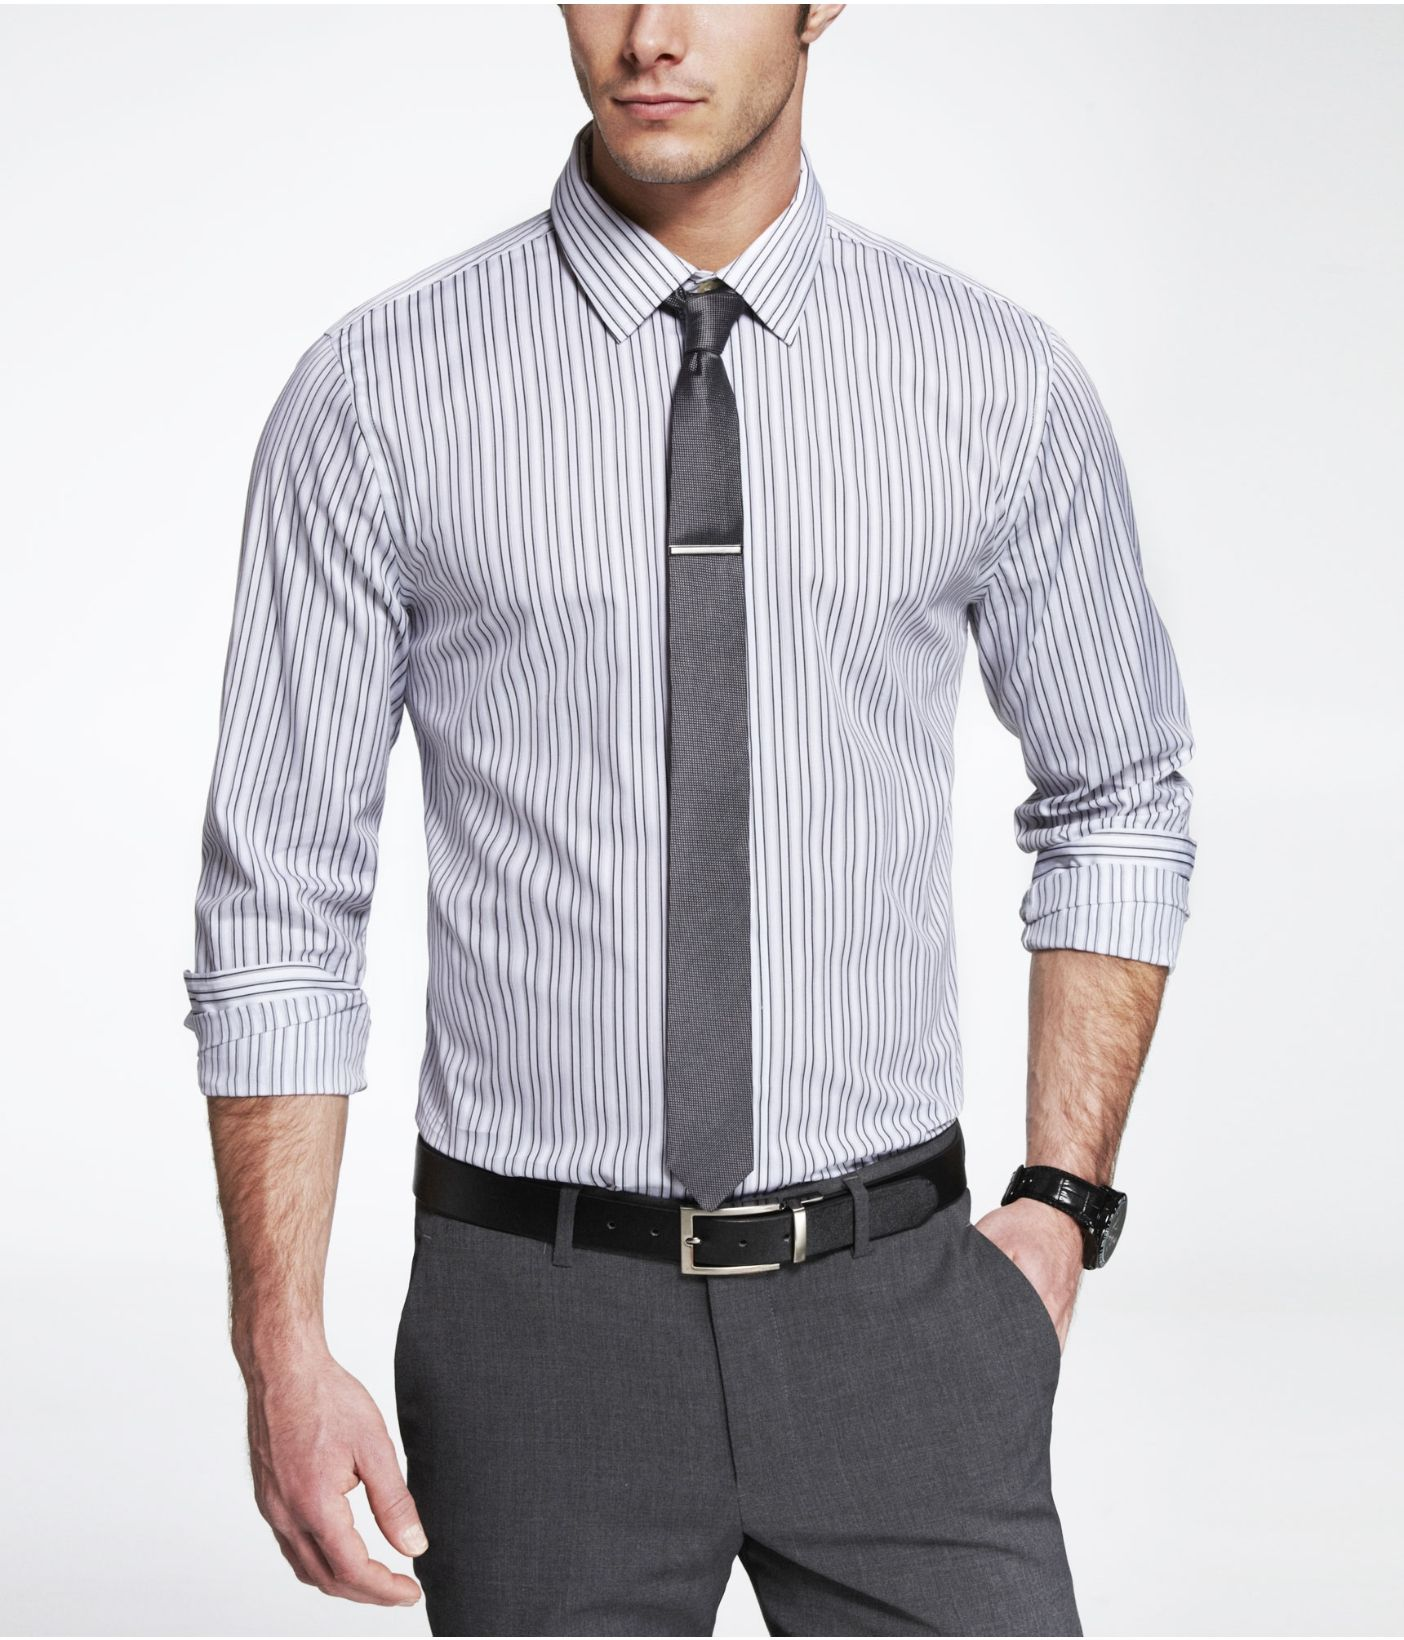 gray striped dress shirt, gray tie, gray pants, black belt ...